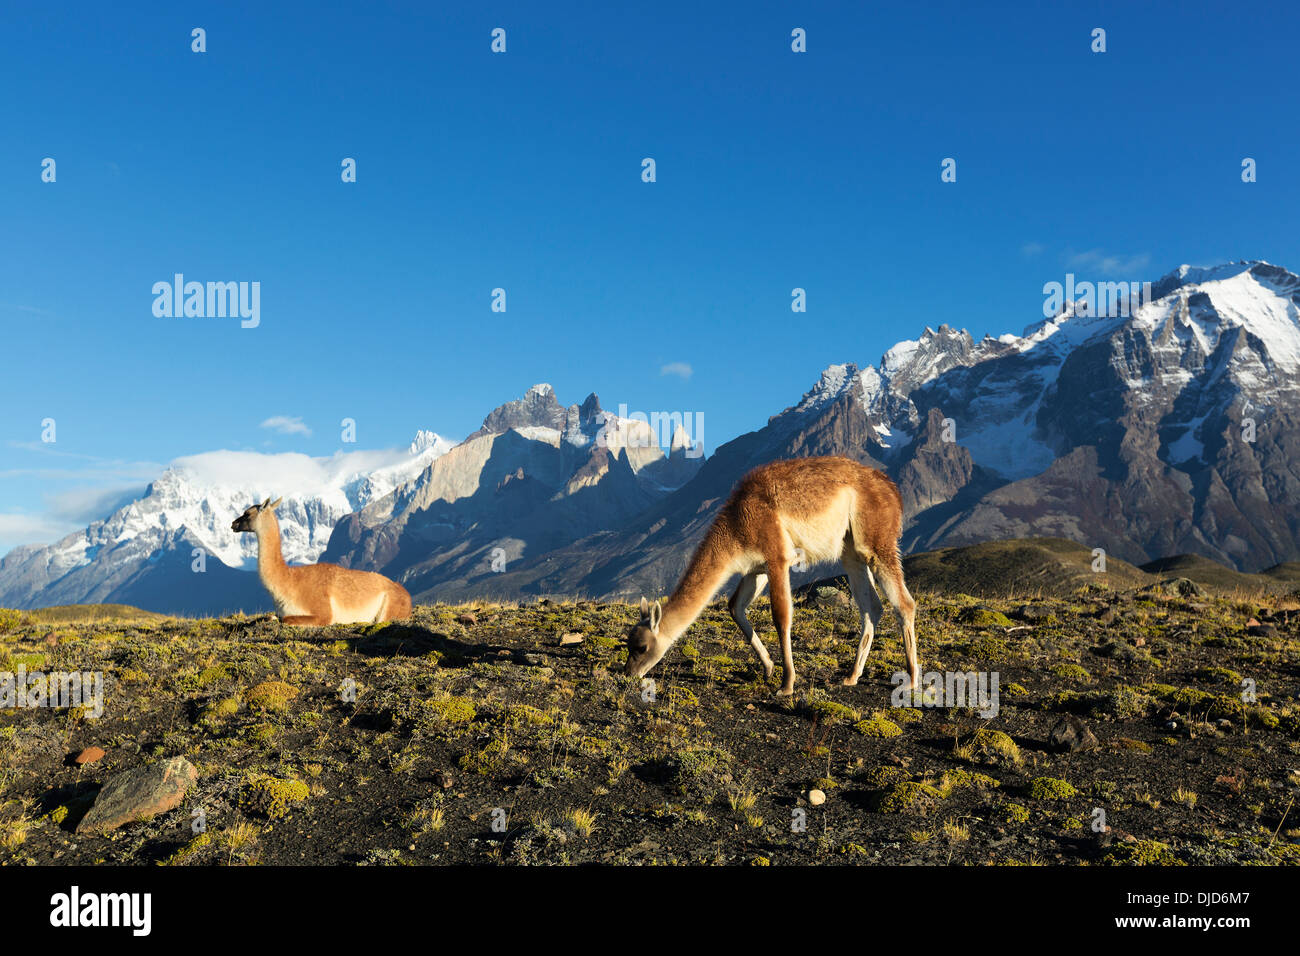 Two Guanacos(Lama guanicoe) standing on the hillside with Torres del Paine mountains in the background.Patagonia.Chile - Stock Image